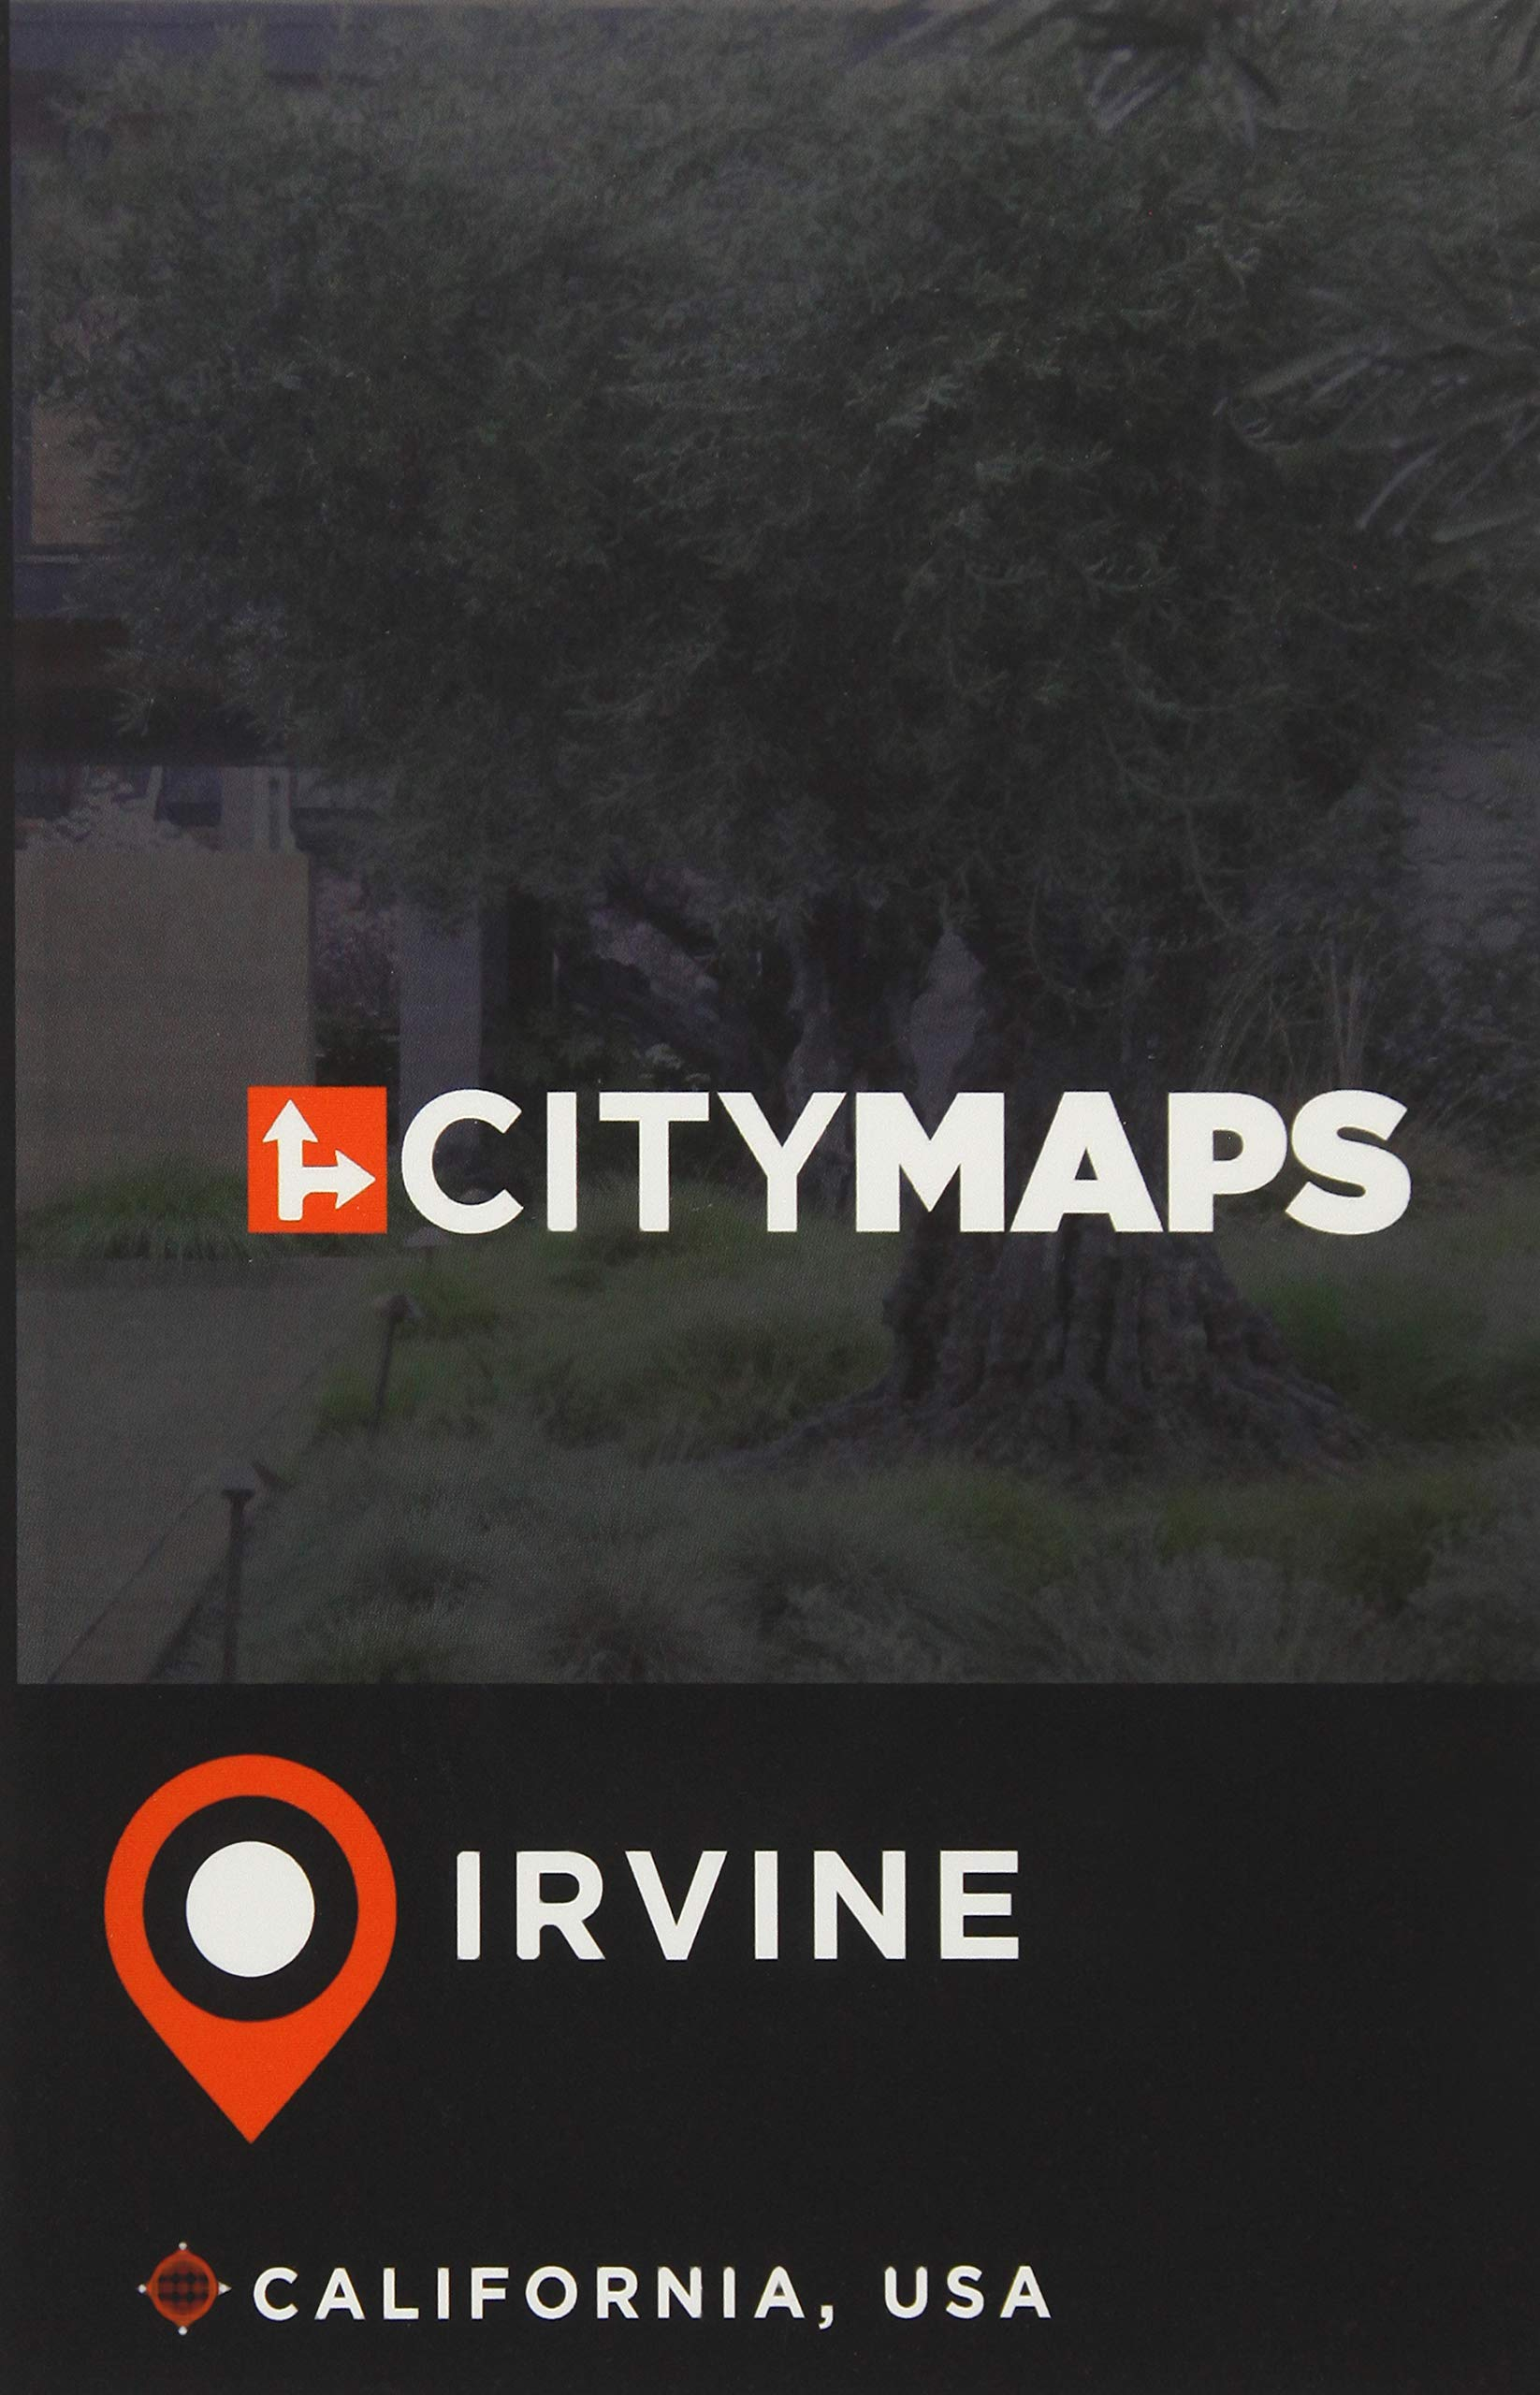 City Maps Irvine California, USA: James McFee: 9781548933944 ... Irvine Maps on south coast metro map, downieville map, tulloch map, university of ca map, arroyo trabuco map, mt laguna map, west coast university map, desert cities map, bo ness map, hope ranch map, big pine map, canyon crest map, ono map, corona del mar state beach map, burney map, uc riverside map, uci building map, murrieta mesa map, laguna canyon map, aliso creek map,